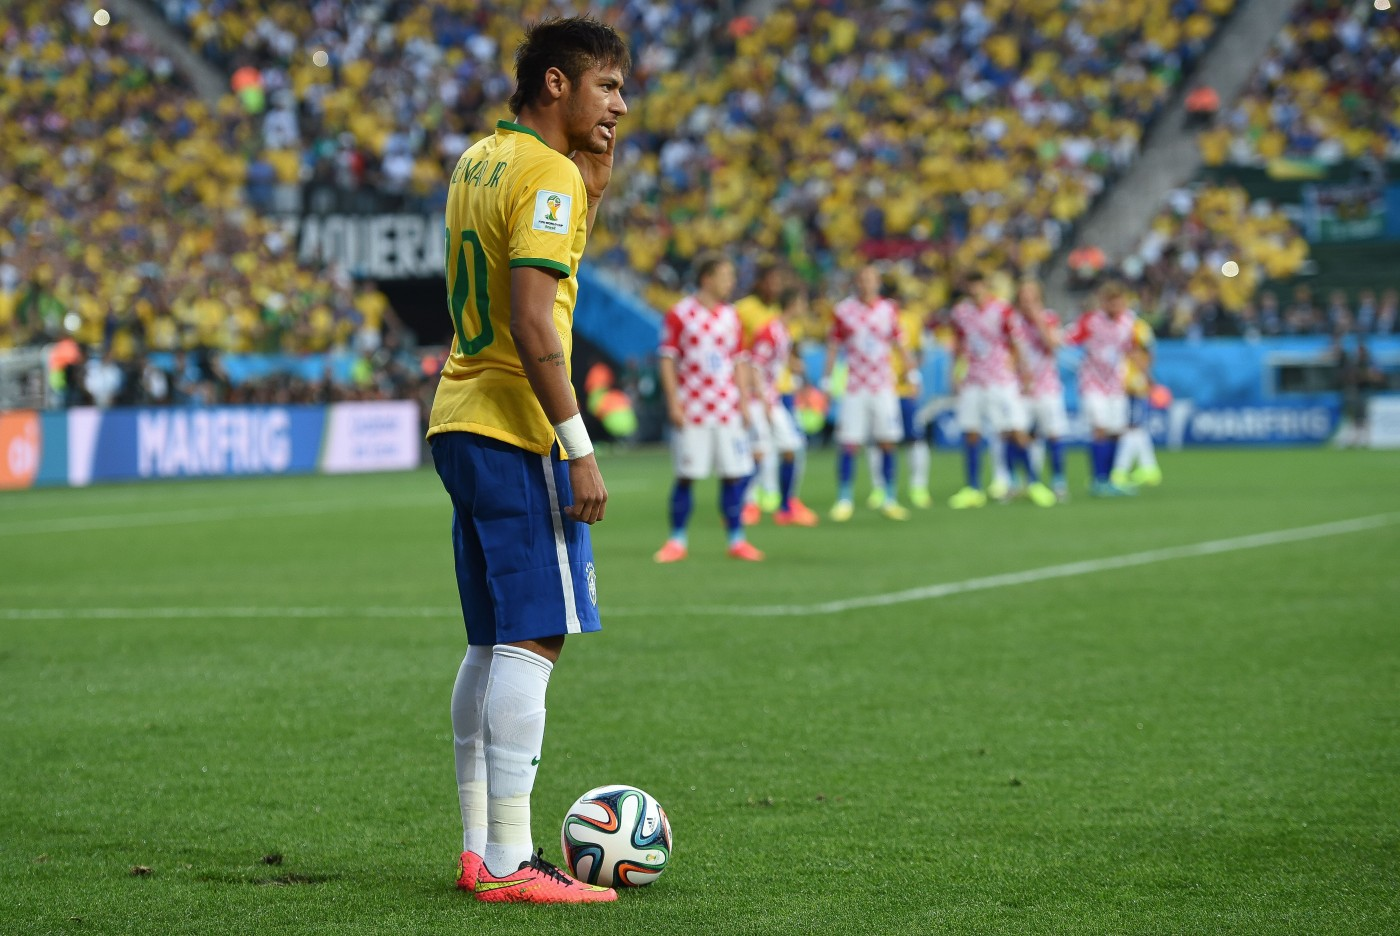 Neymar prepares to take a free kick during Brazil's opening match of the 2014 FIFA World Cup against Croatia. (Krassotkin/Wikimedia Commons)